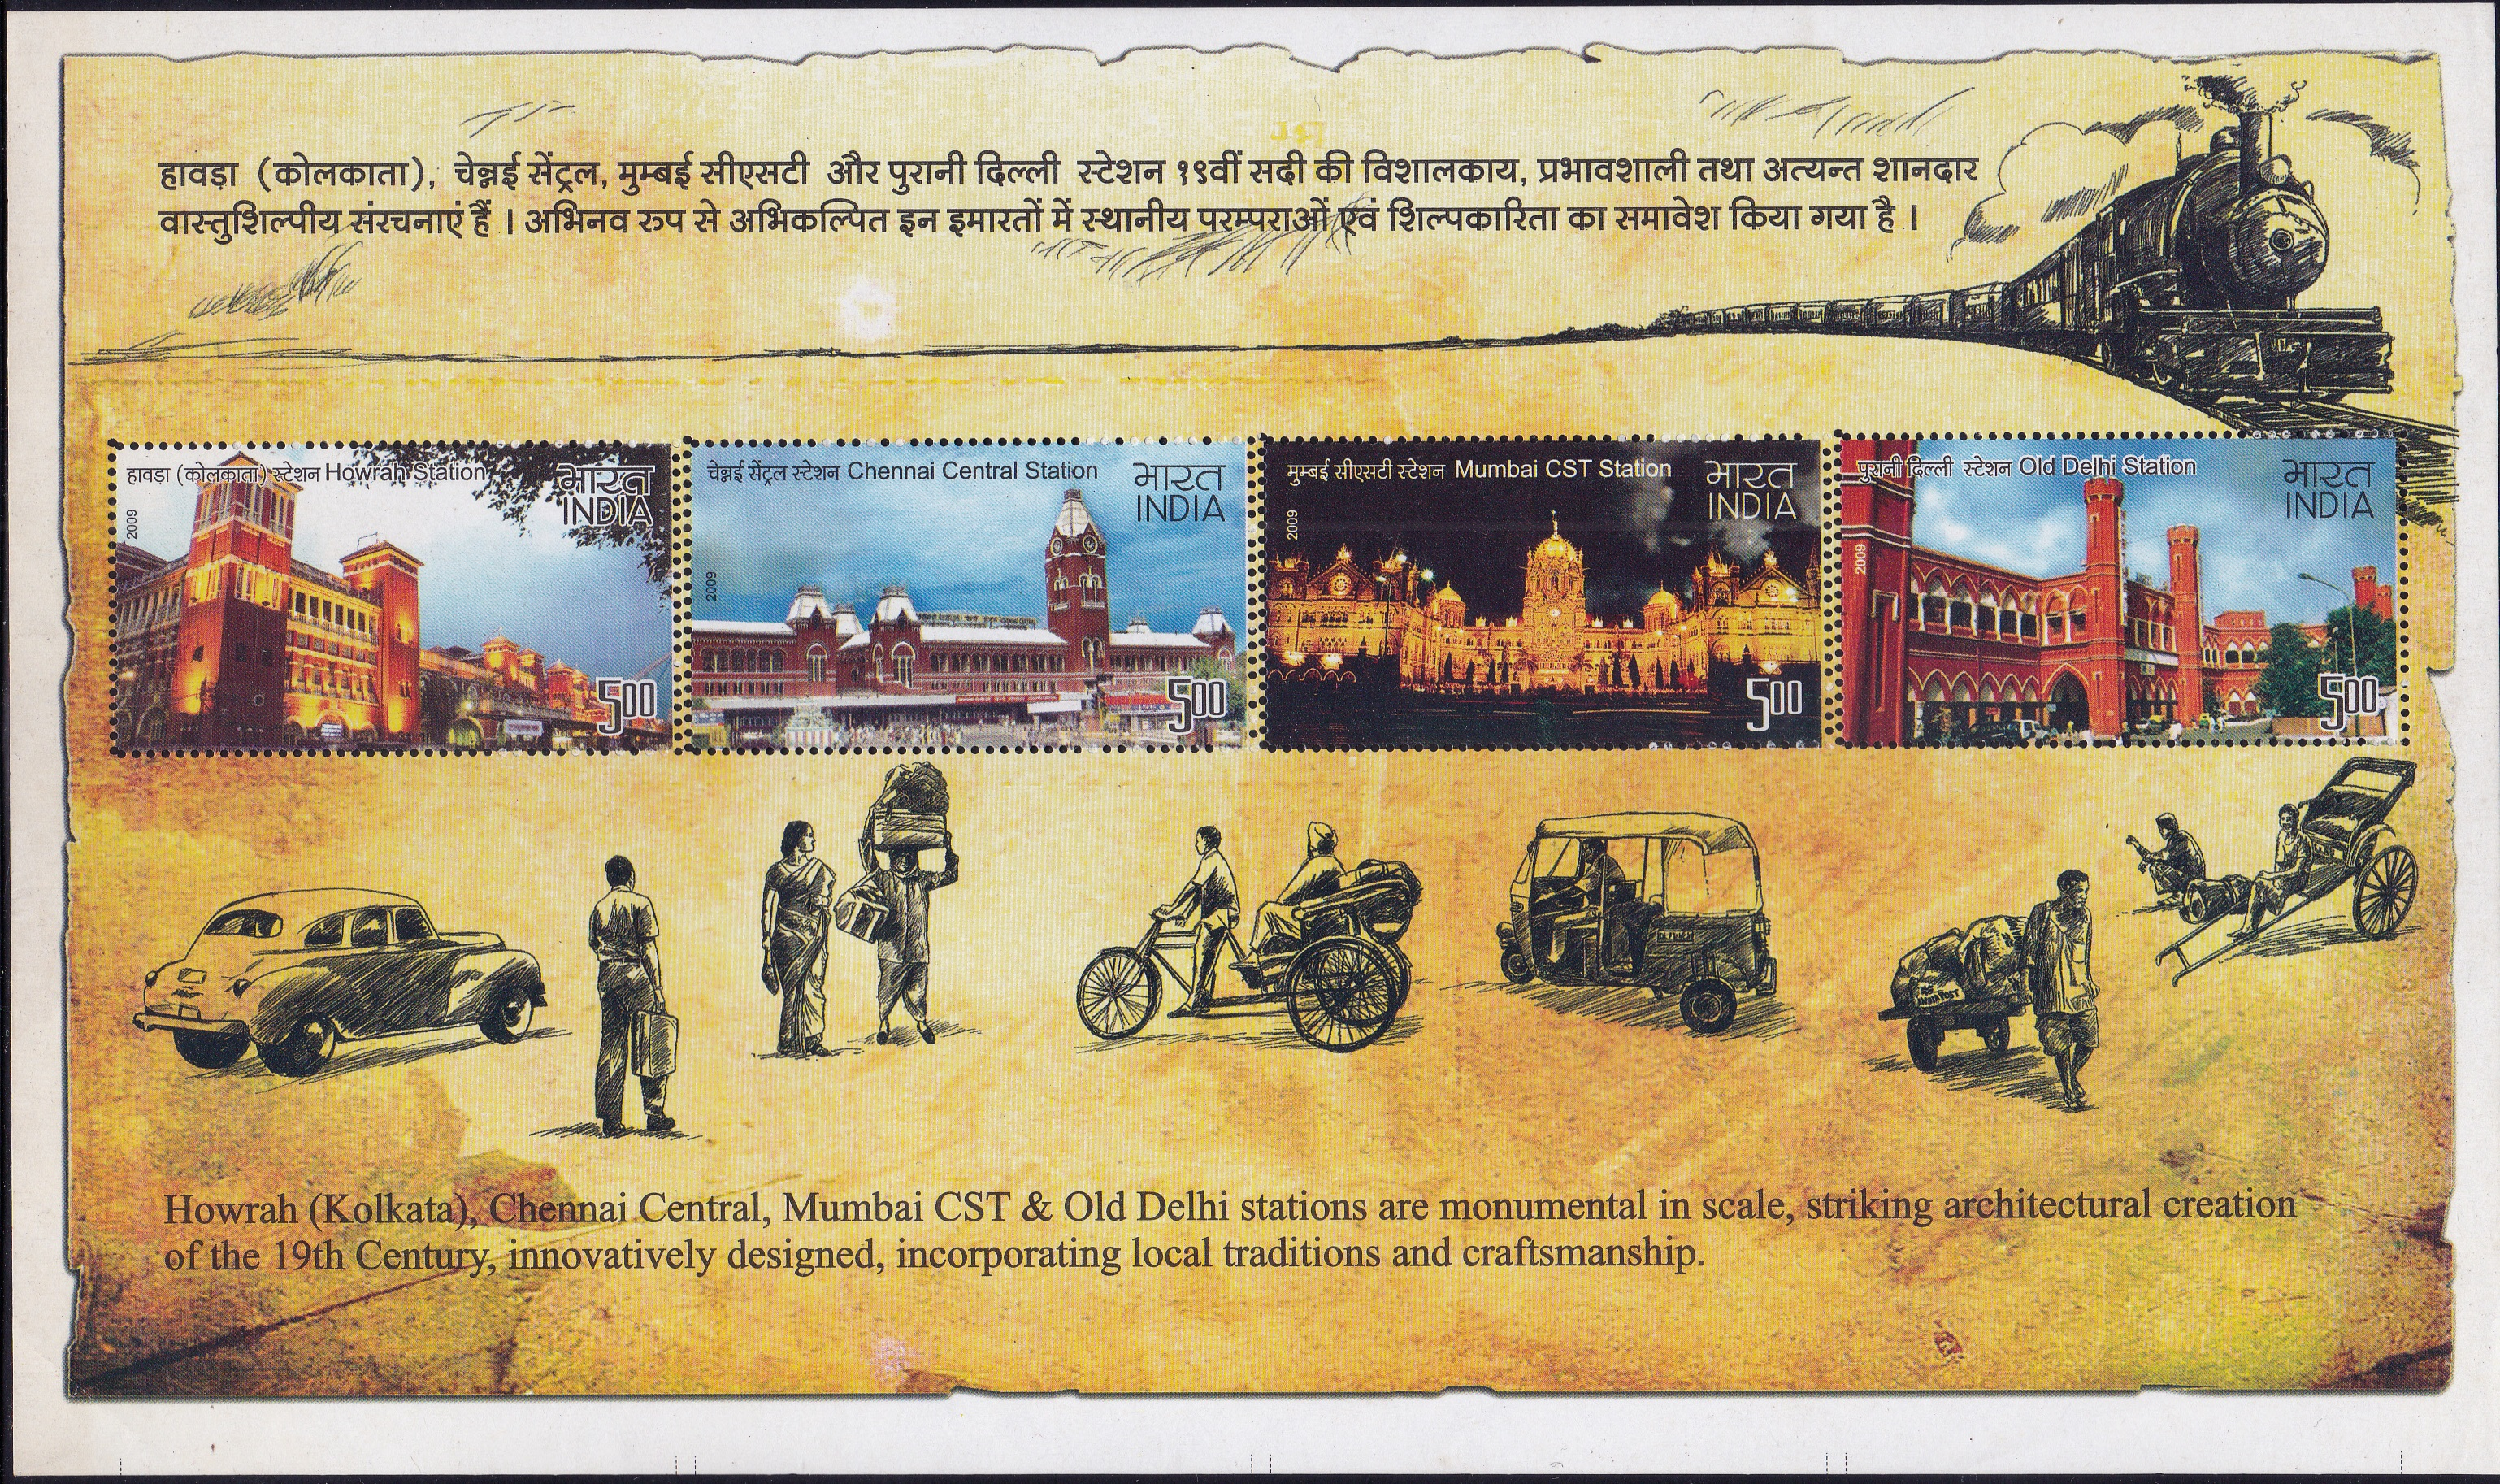 2500 Railway Stations [India Miniature Sheet 2009]